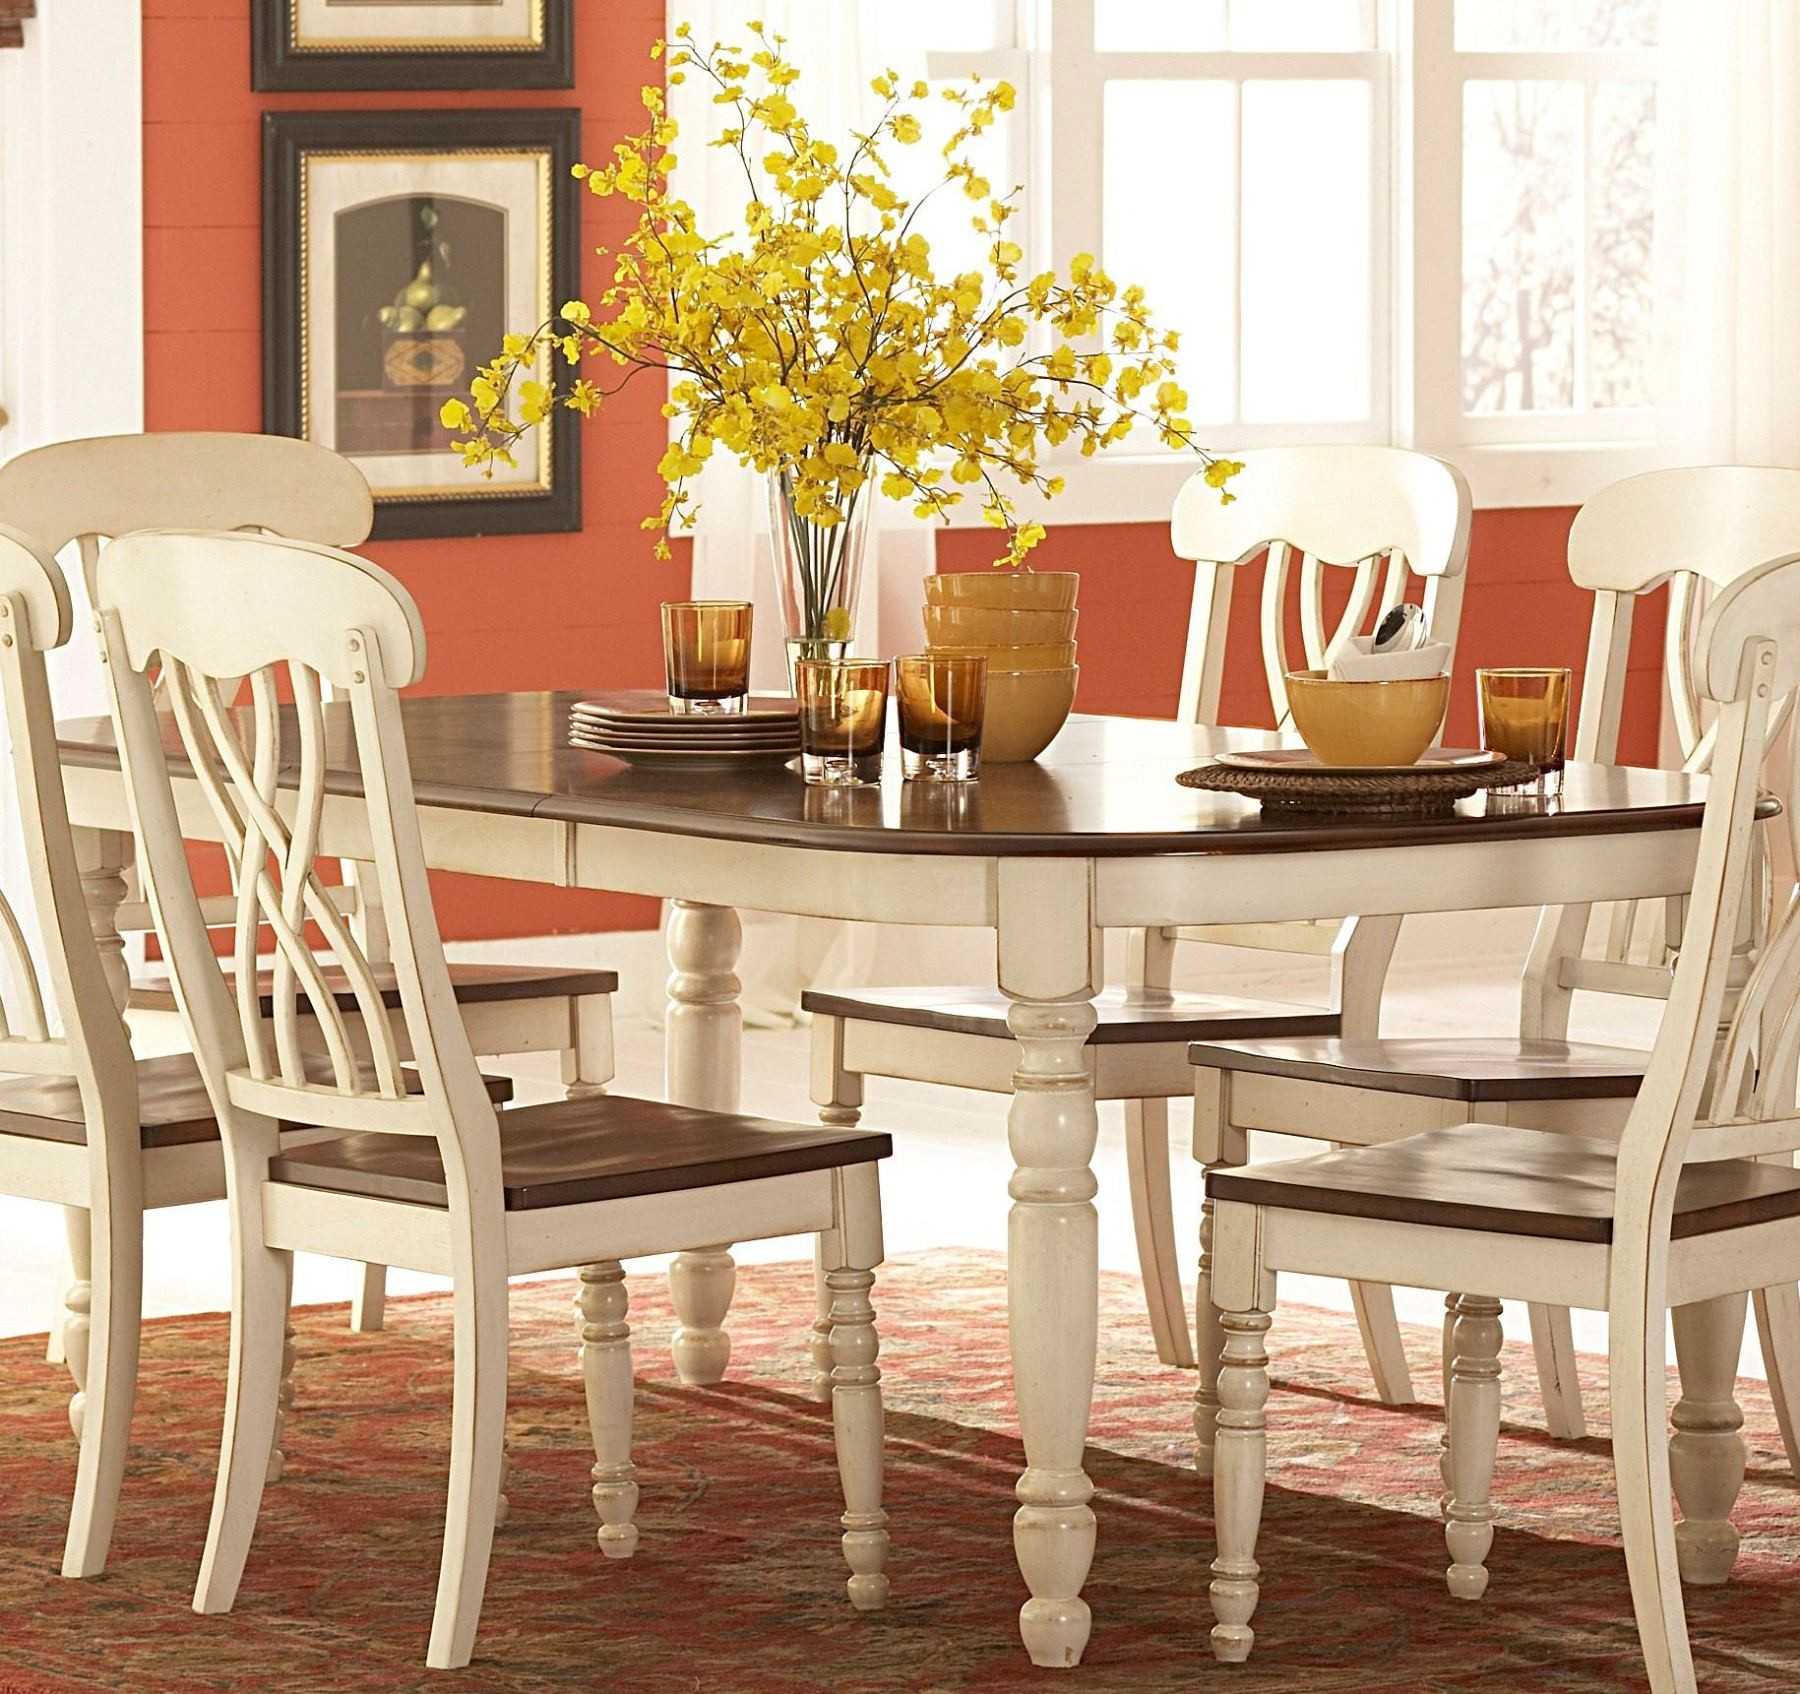 Ohana White Rectangular Dining Room Set368046. 368047. 368048. 368049